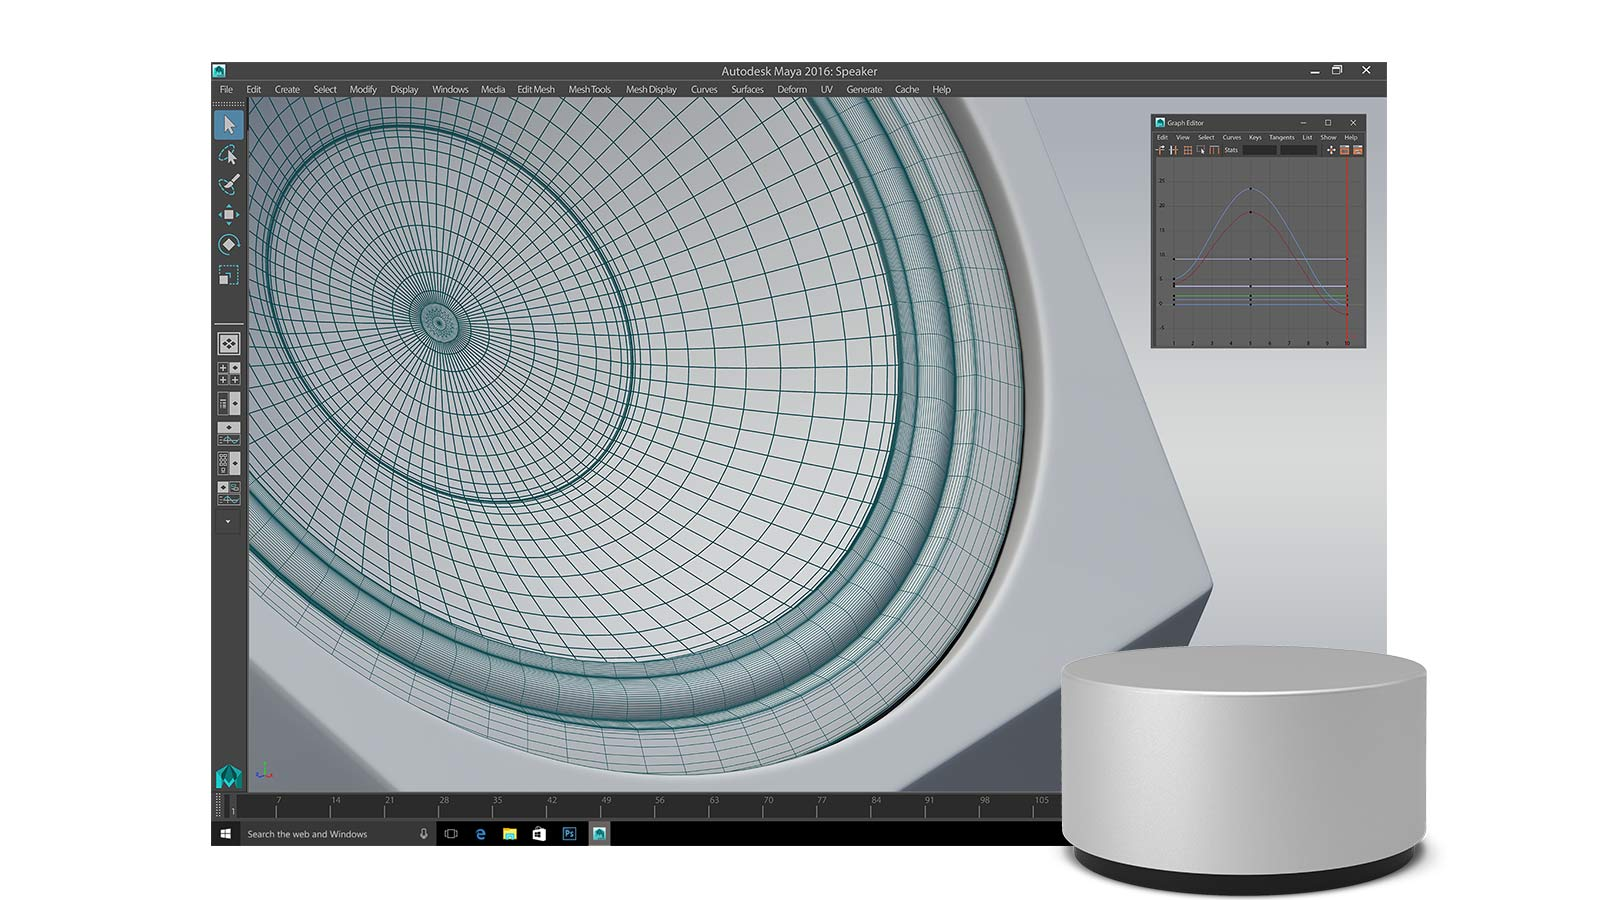 Maya app open on the Surface Pro 4 display with Surface Dial in front of it